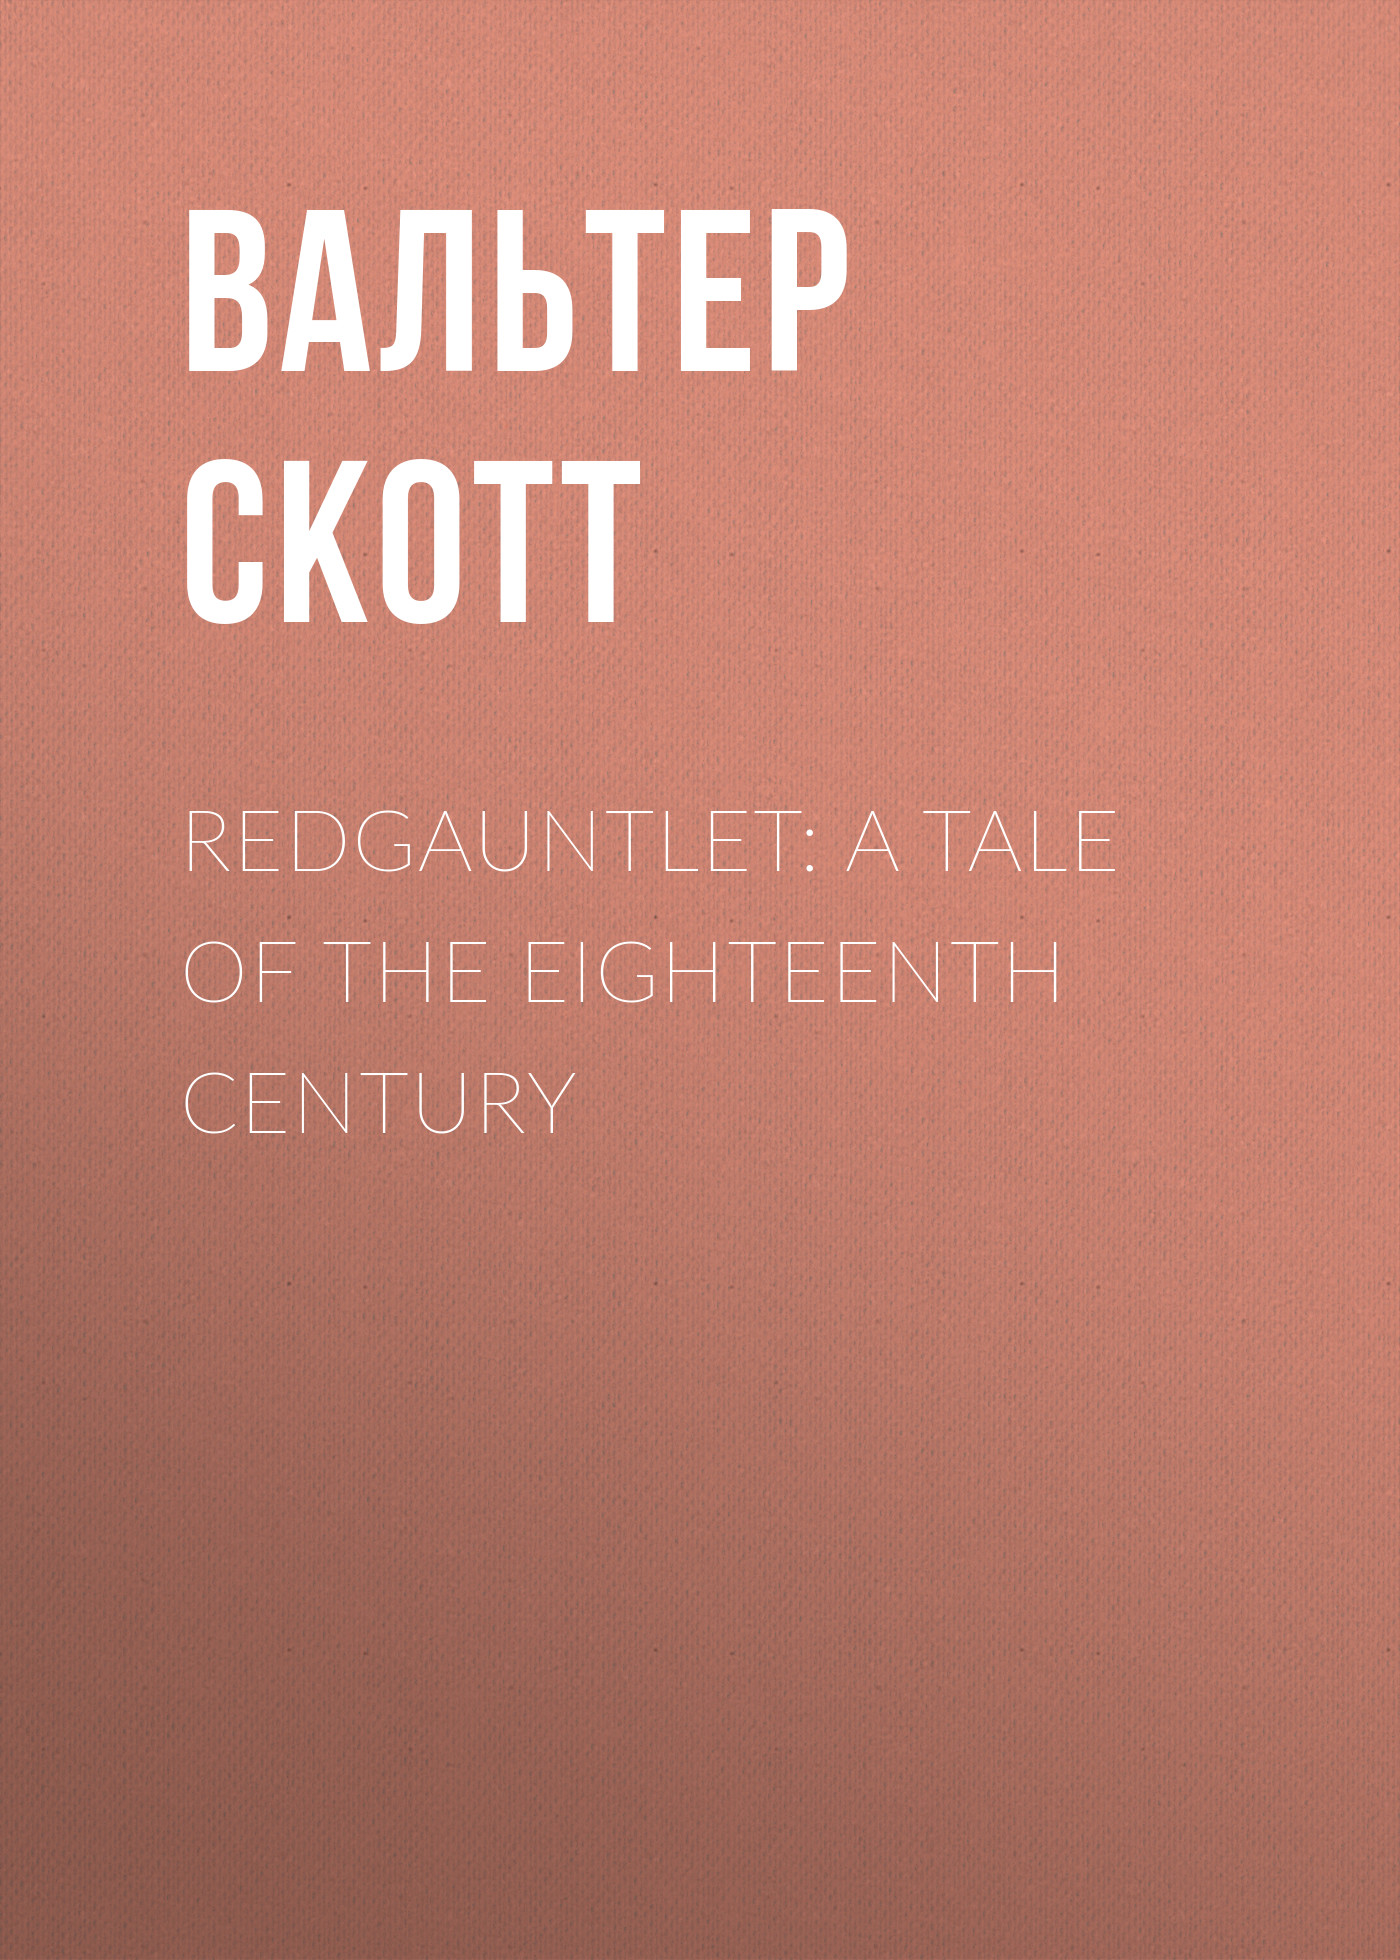 Вальтер Скотт Redgauntlet: A Tale Of The Eighteenth Century